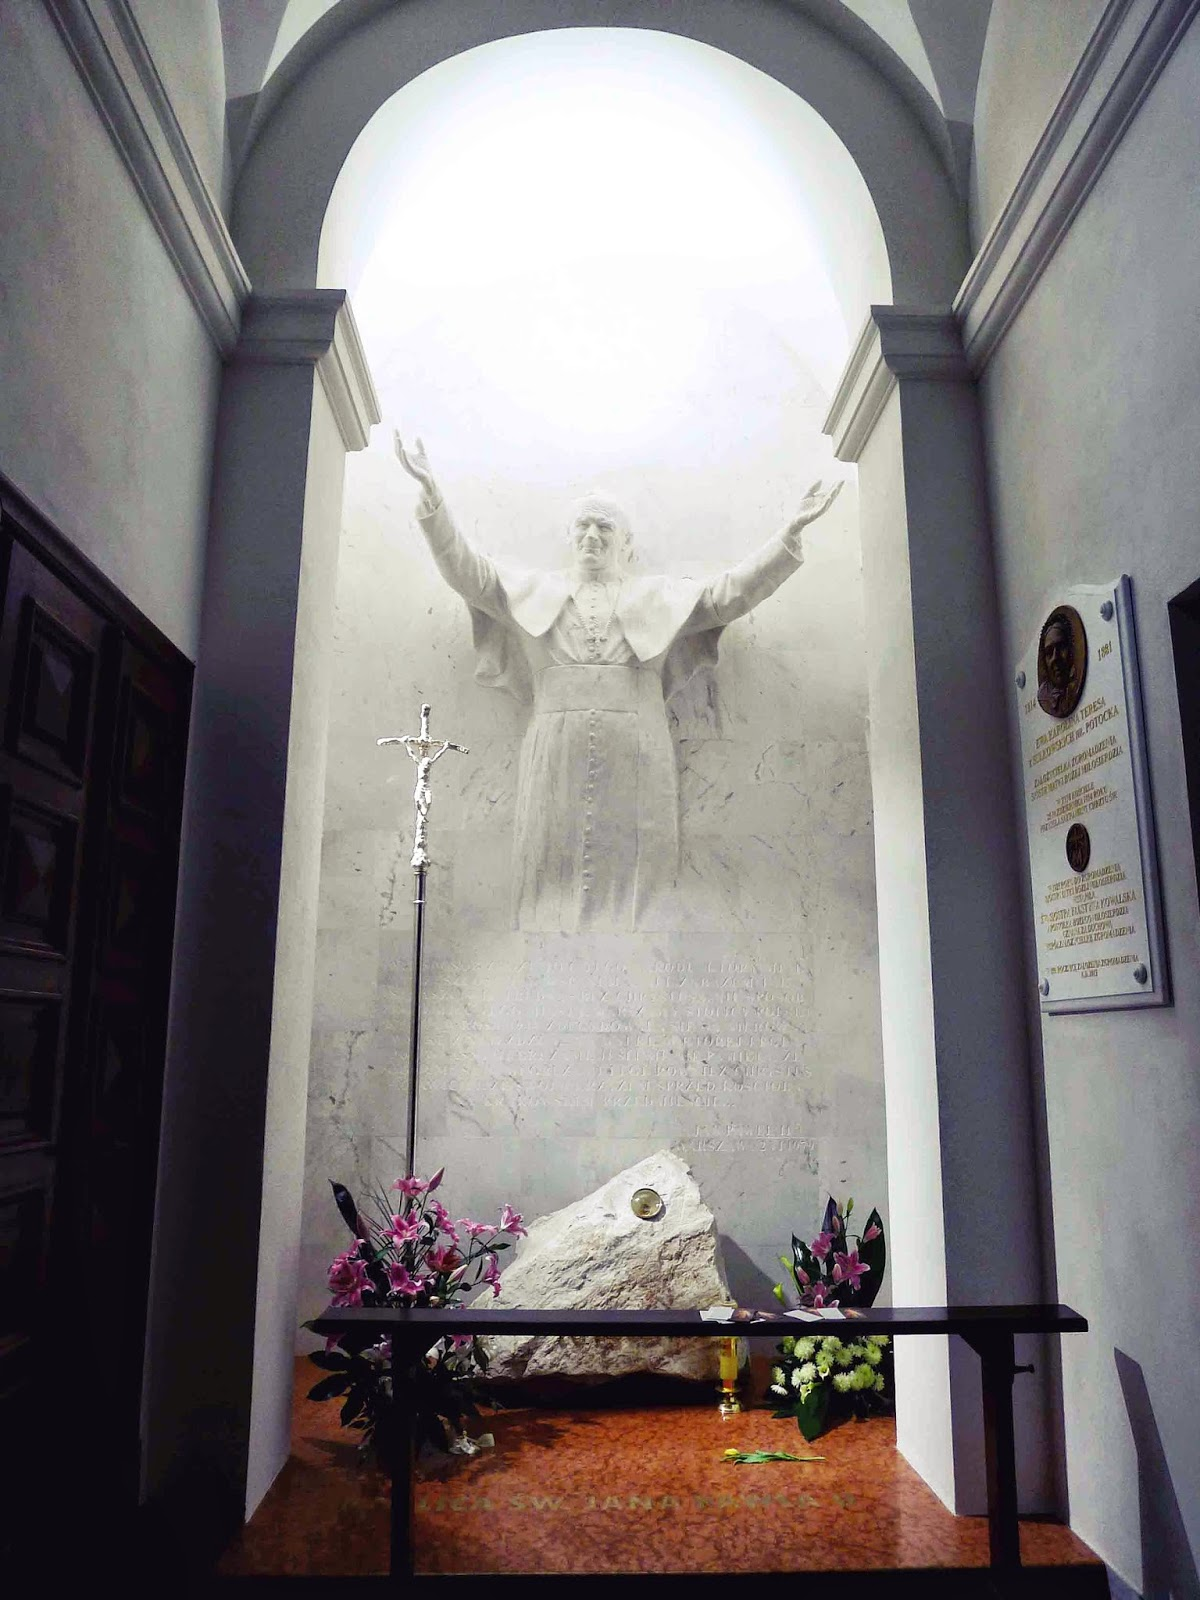 Pope John Paul II Memorial